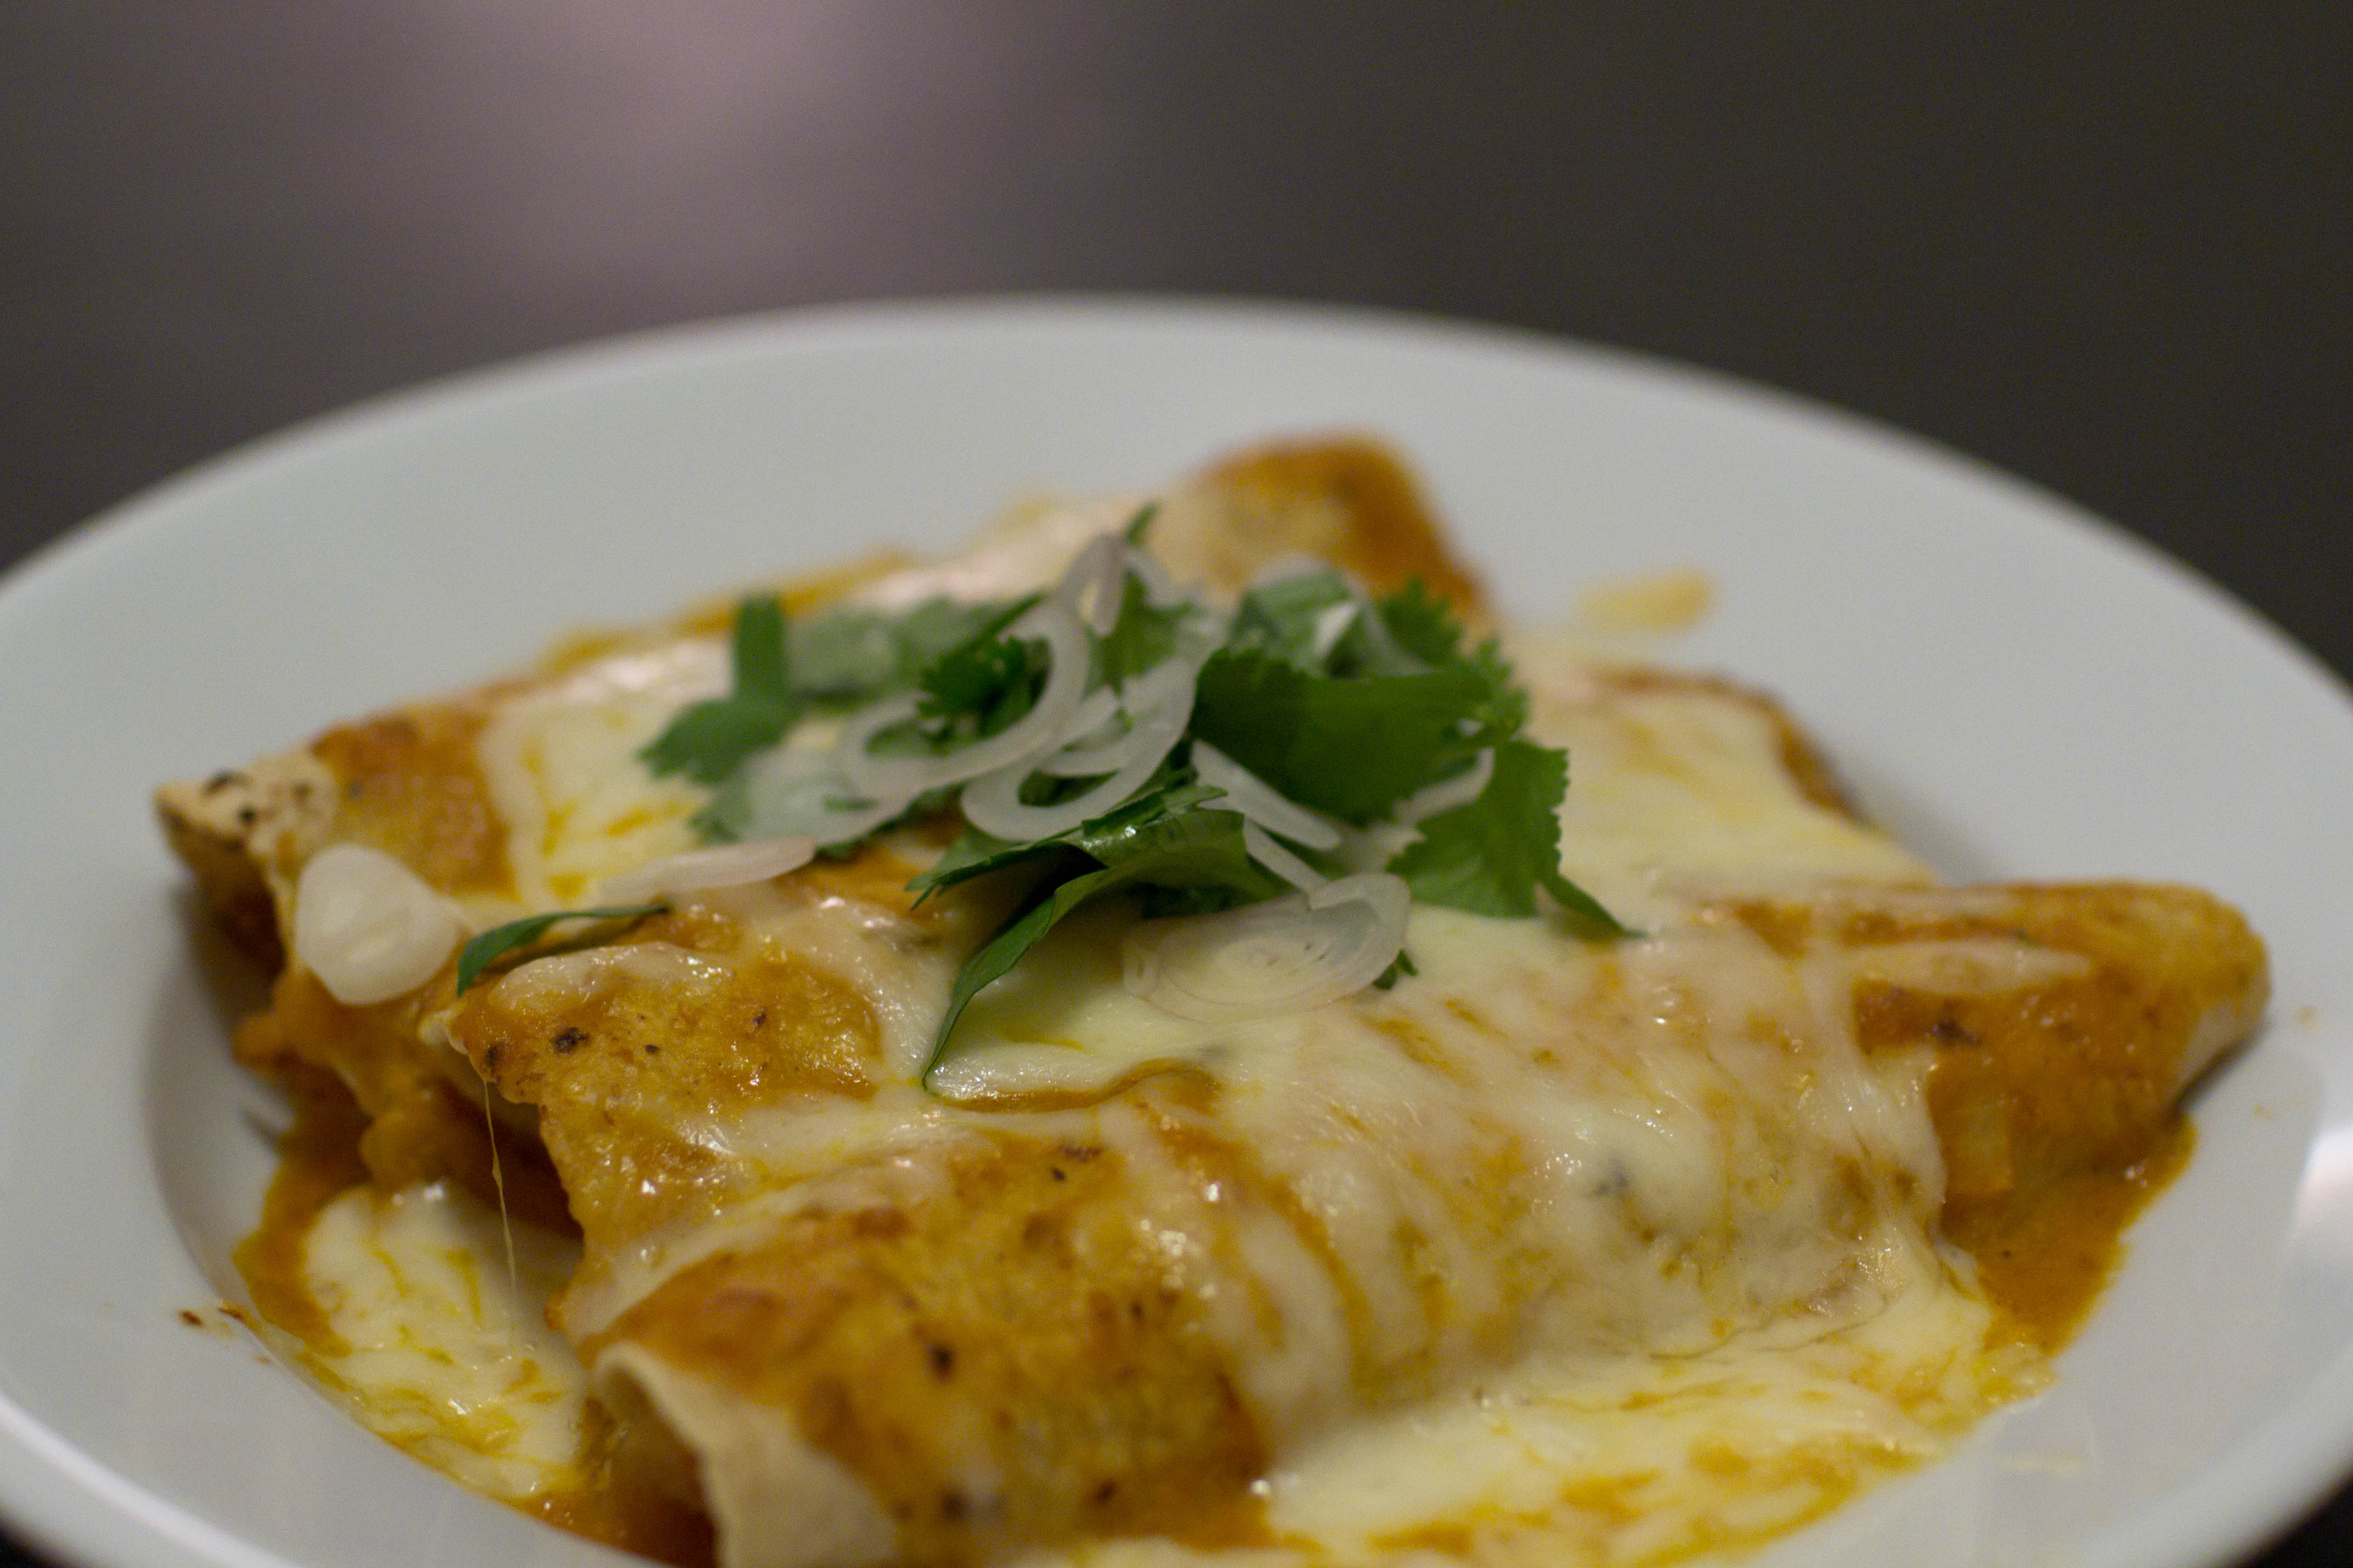 File:Enchiladas suizas.jpg - Wikipedia, the free encyclopedia